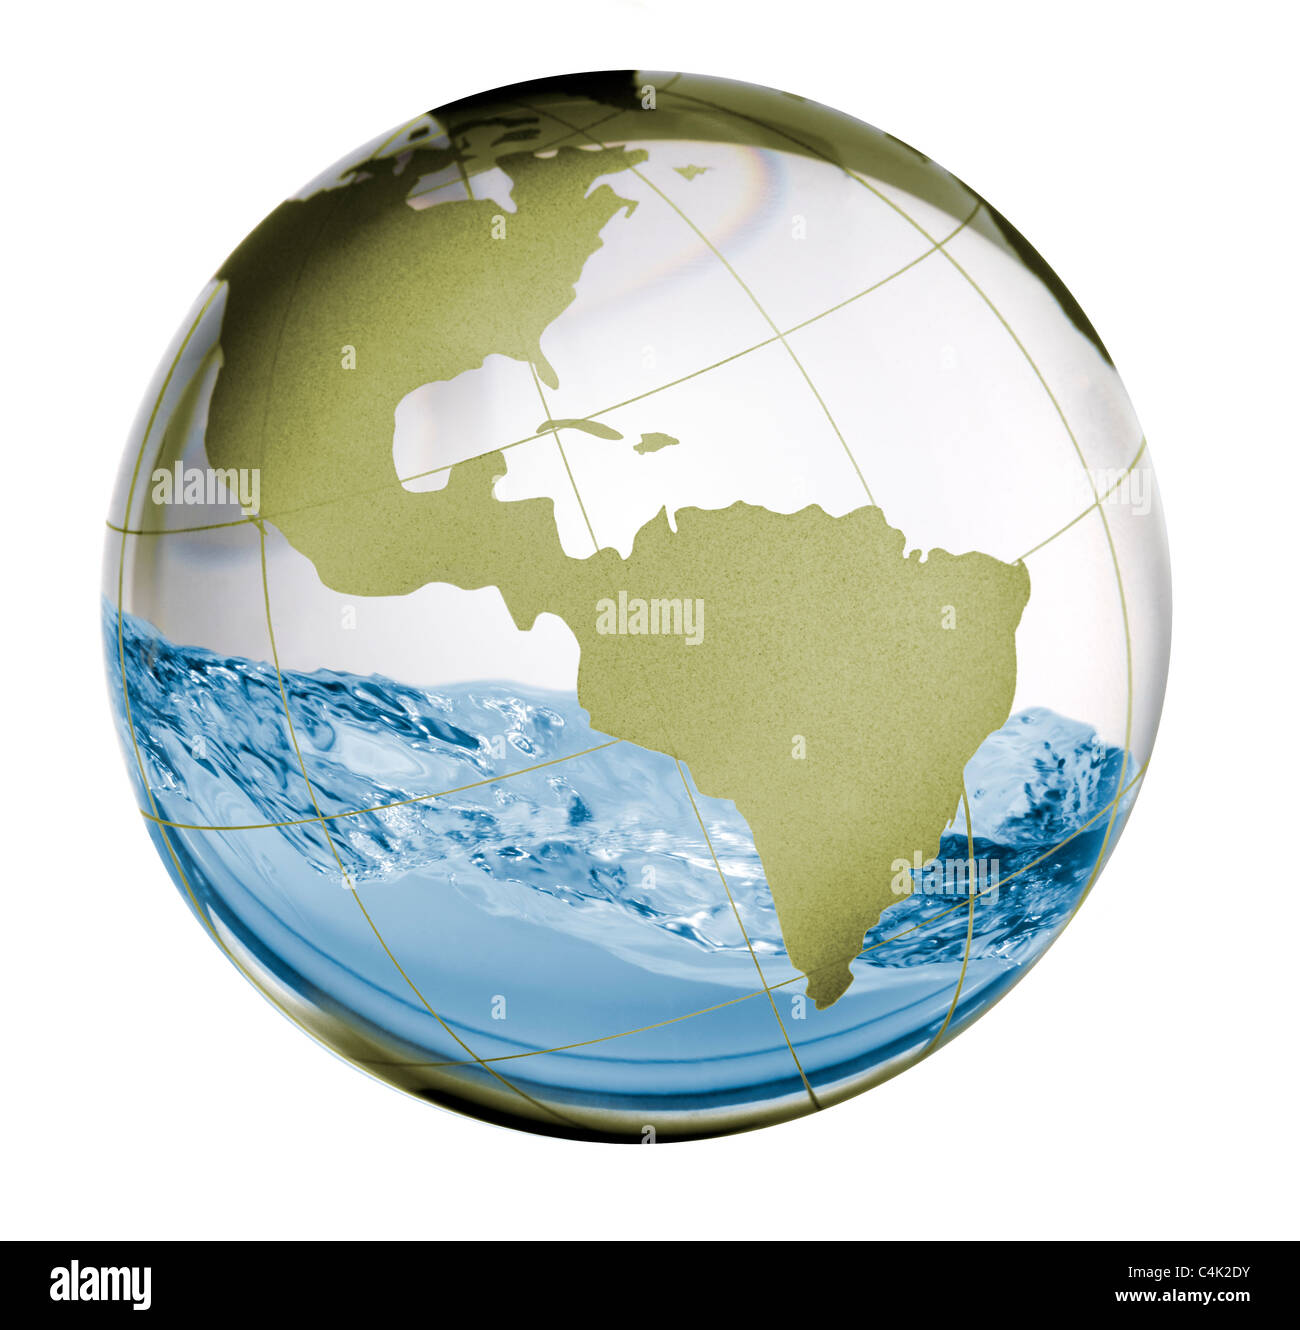 a clear glass globe with water sloshing inside depicting earth's water situation or capacity. - Stock Image